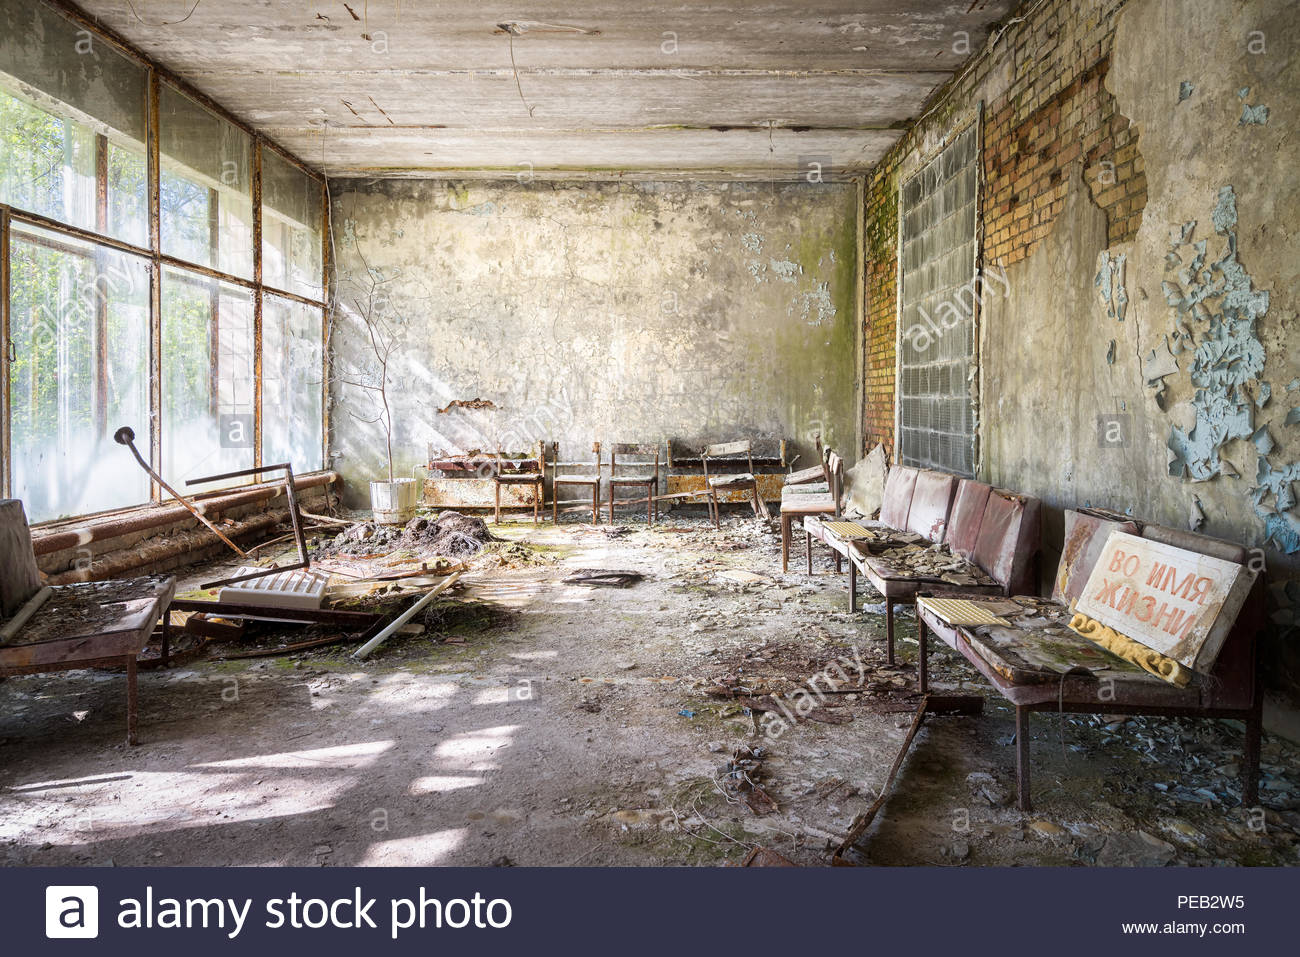 Photo taken in the abandoned city of Pripyat (Chernobyl) or the area of the Duga-3 radar, after the nuclear disaster. Stock Photo